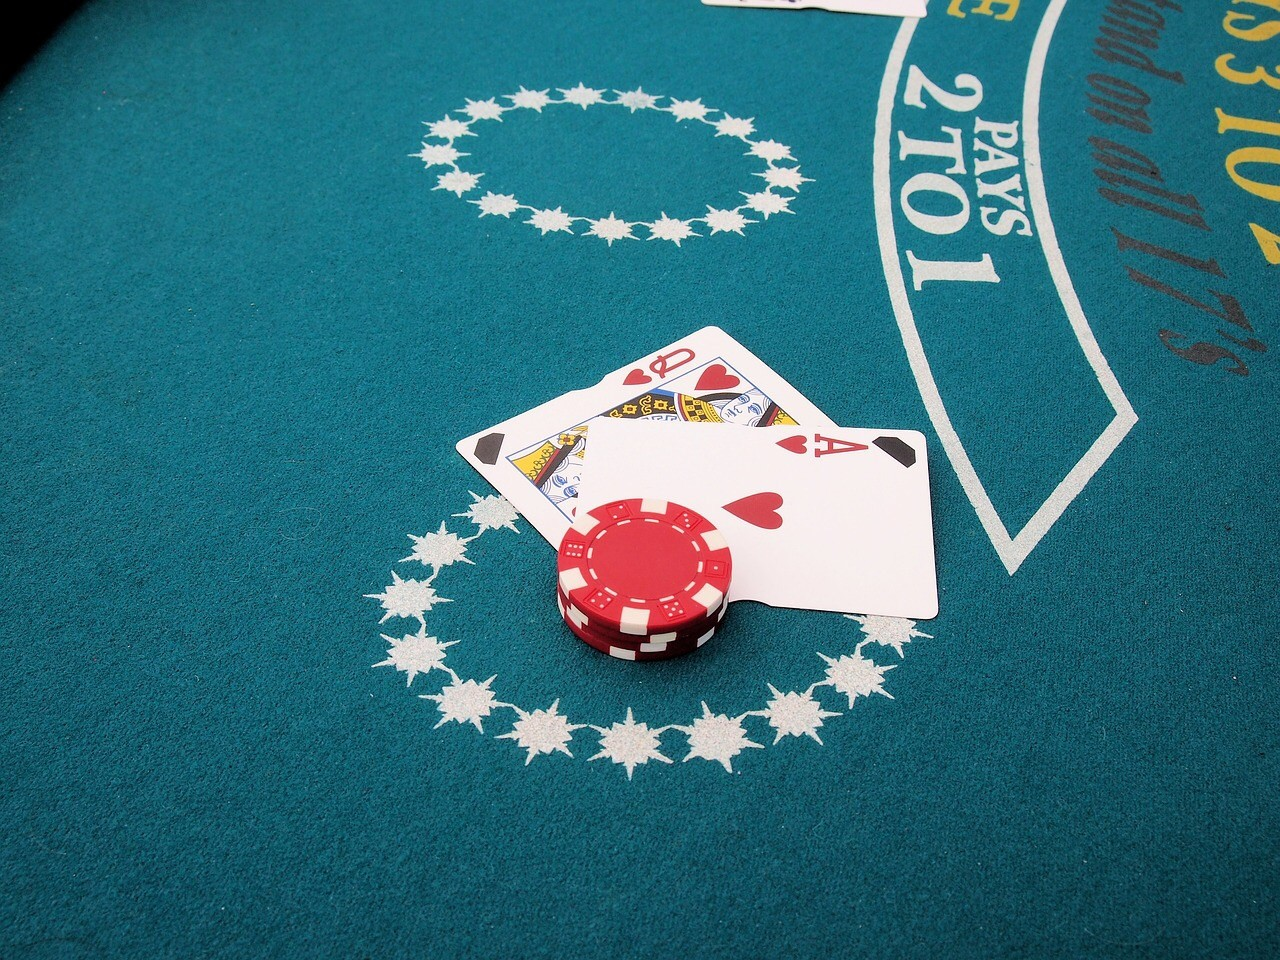 The Crucial Difference Between Casino and Google